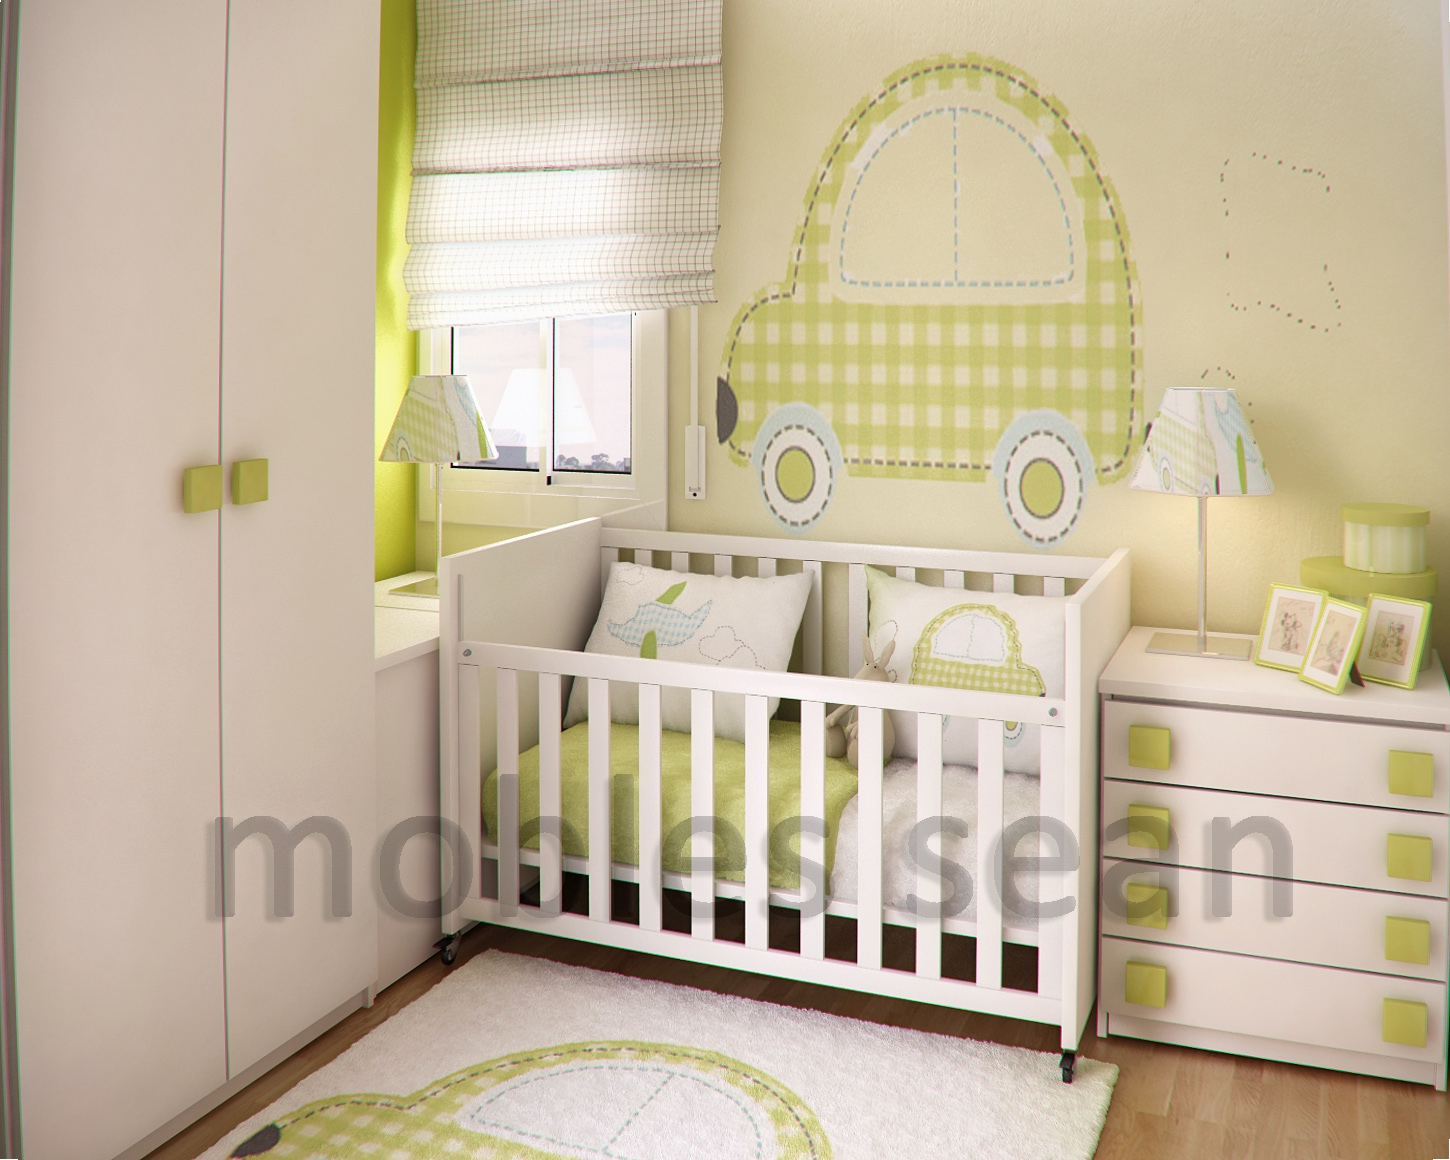 Baby boy bedroom decorating ideas - Baby Boy Bedroom Decorating Ideas 12